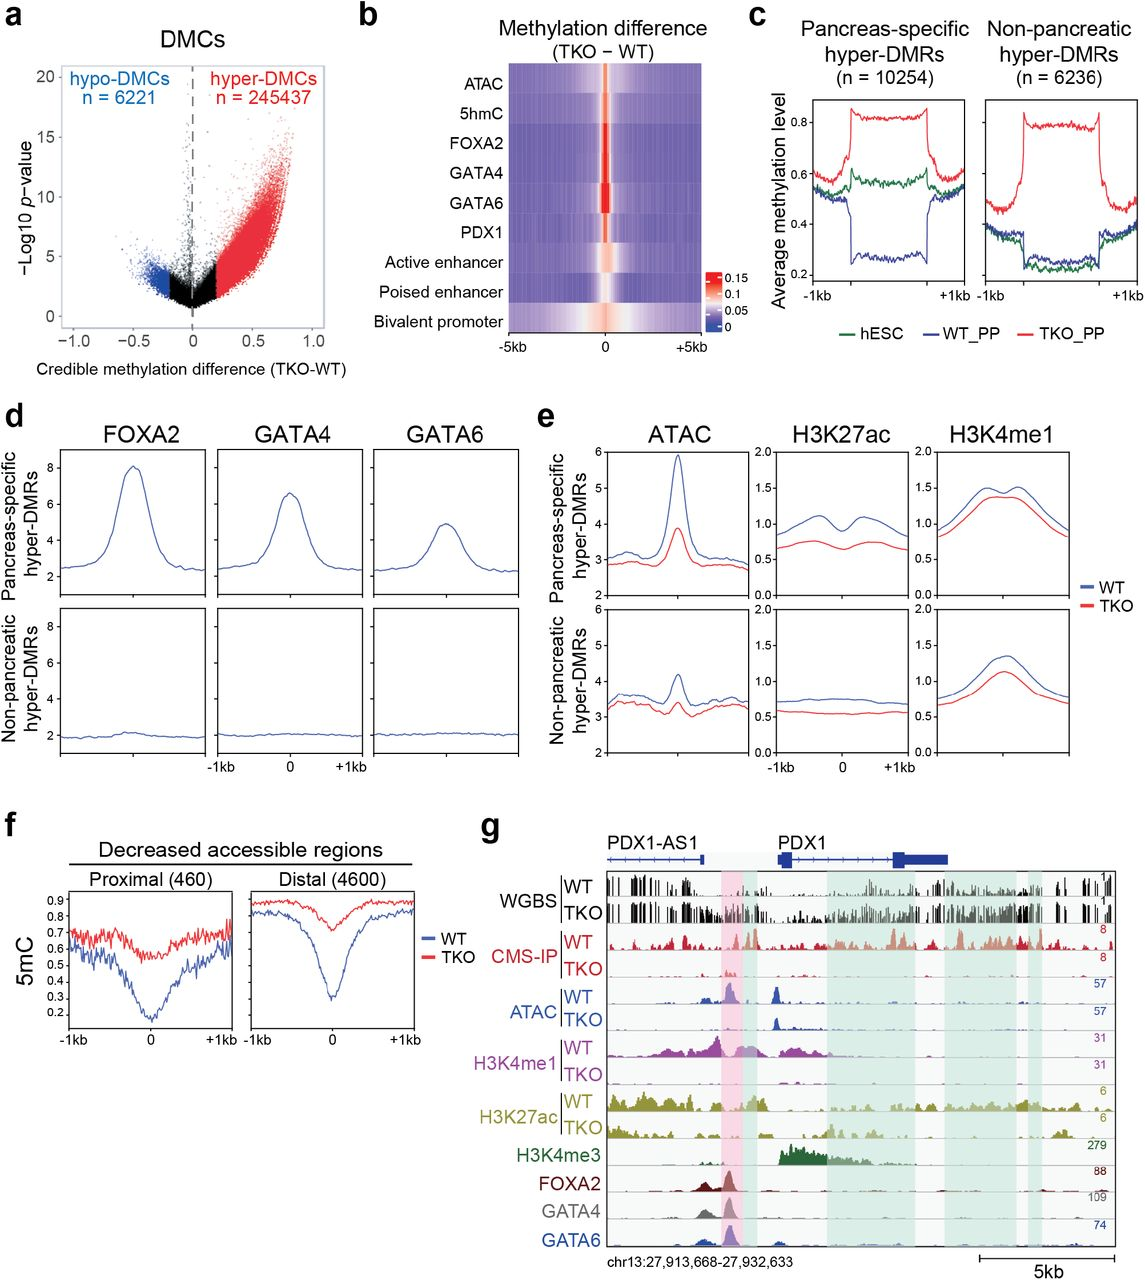 Pancreas-specific hyper-DMRs show reduced chromatin activity during pancreatic differentiation. a Volcano plot of WGBS data illustrating differentially methylated CpGs (DMCs) identified in TKO_PP cells compared with WT_PP cells. Red and blue represent increased and decreased 5mC in TKO_PP cells, respectively (credible methylation difference > 0.2). b Heatmap illustrating methylation difference between TKO_PP and WT_PP cells at centers of annotated genomic features (± 5 kb) for chromatin accessibility (ATAC), hydroxylation (5hmC), TF binding (FOXA2, GATA4, GATA6, and PDX1), bivalent promoters, poised enhancers, and active enhancers. Average 5mC signals of every 100-bp bin were calculated. c Classification of TKO hyper-DMRs based on 5mC levels in hESCs (green), WT_PP cells (blue), and TKO_PP cells (red). d Average plots of FOXA2 (left column), GATA4 (middle column), and GATA6 (right column) signal at pancreas-specific hyper-DMRs or non-pancreatic hyper-DMRs in pancreatic progenitors. e Average plots of ATAC (left column), H3K27ac (middle column), and H3K4me1 (right column) at pancreas-specific hyper-DMRs or non-pancreatic hyper-DMRs in WT_PP (blue) and TKO_PP (red) cells. f Average plots of 5mC at proximal (≤ 1 kb from TSS) and distal ( > 1 kb from TSS) decreased accessible regions in WT_PP (blue) and TKO_PP (red) cells. g Genome-browser view of the PDX1/PDX1-AS1 locus. Four type 2 diabetes-associated islet hyper-DMRs 31 overlapping with TKO hyper-DMRs are highlighted in green. A specific TKO hyper-DMR showing decreased ATAC, H3K4me1, and H3K27ac signals is highlighted in pink.